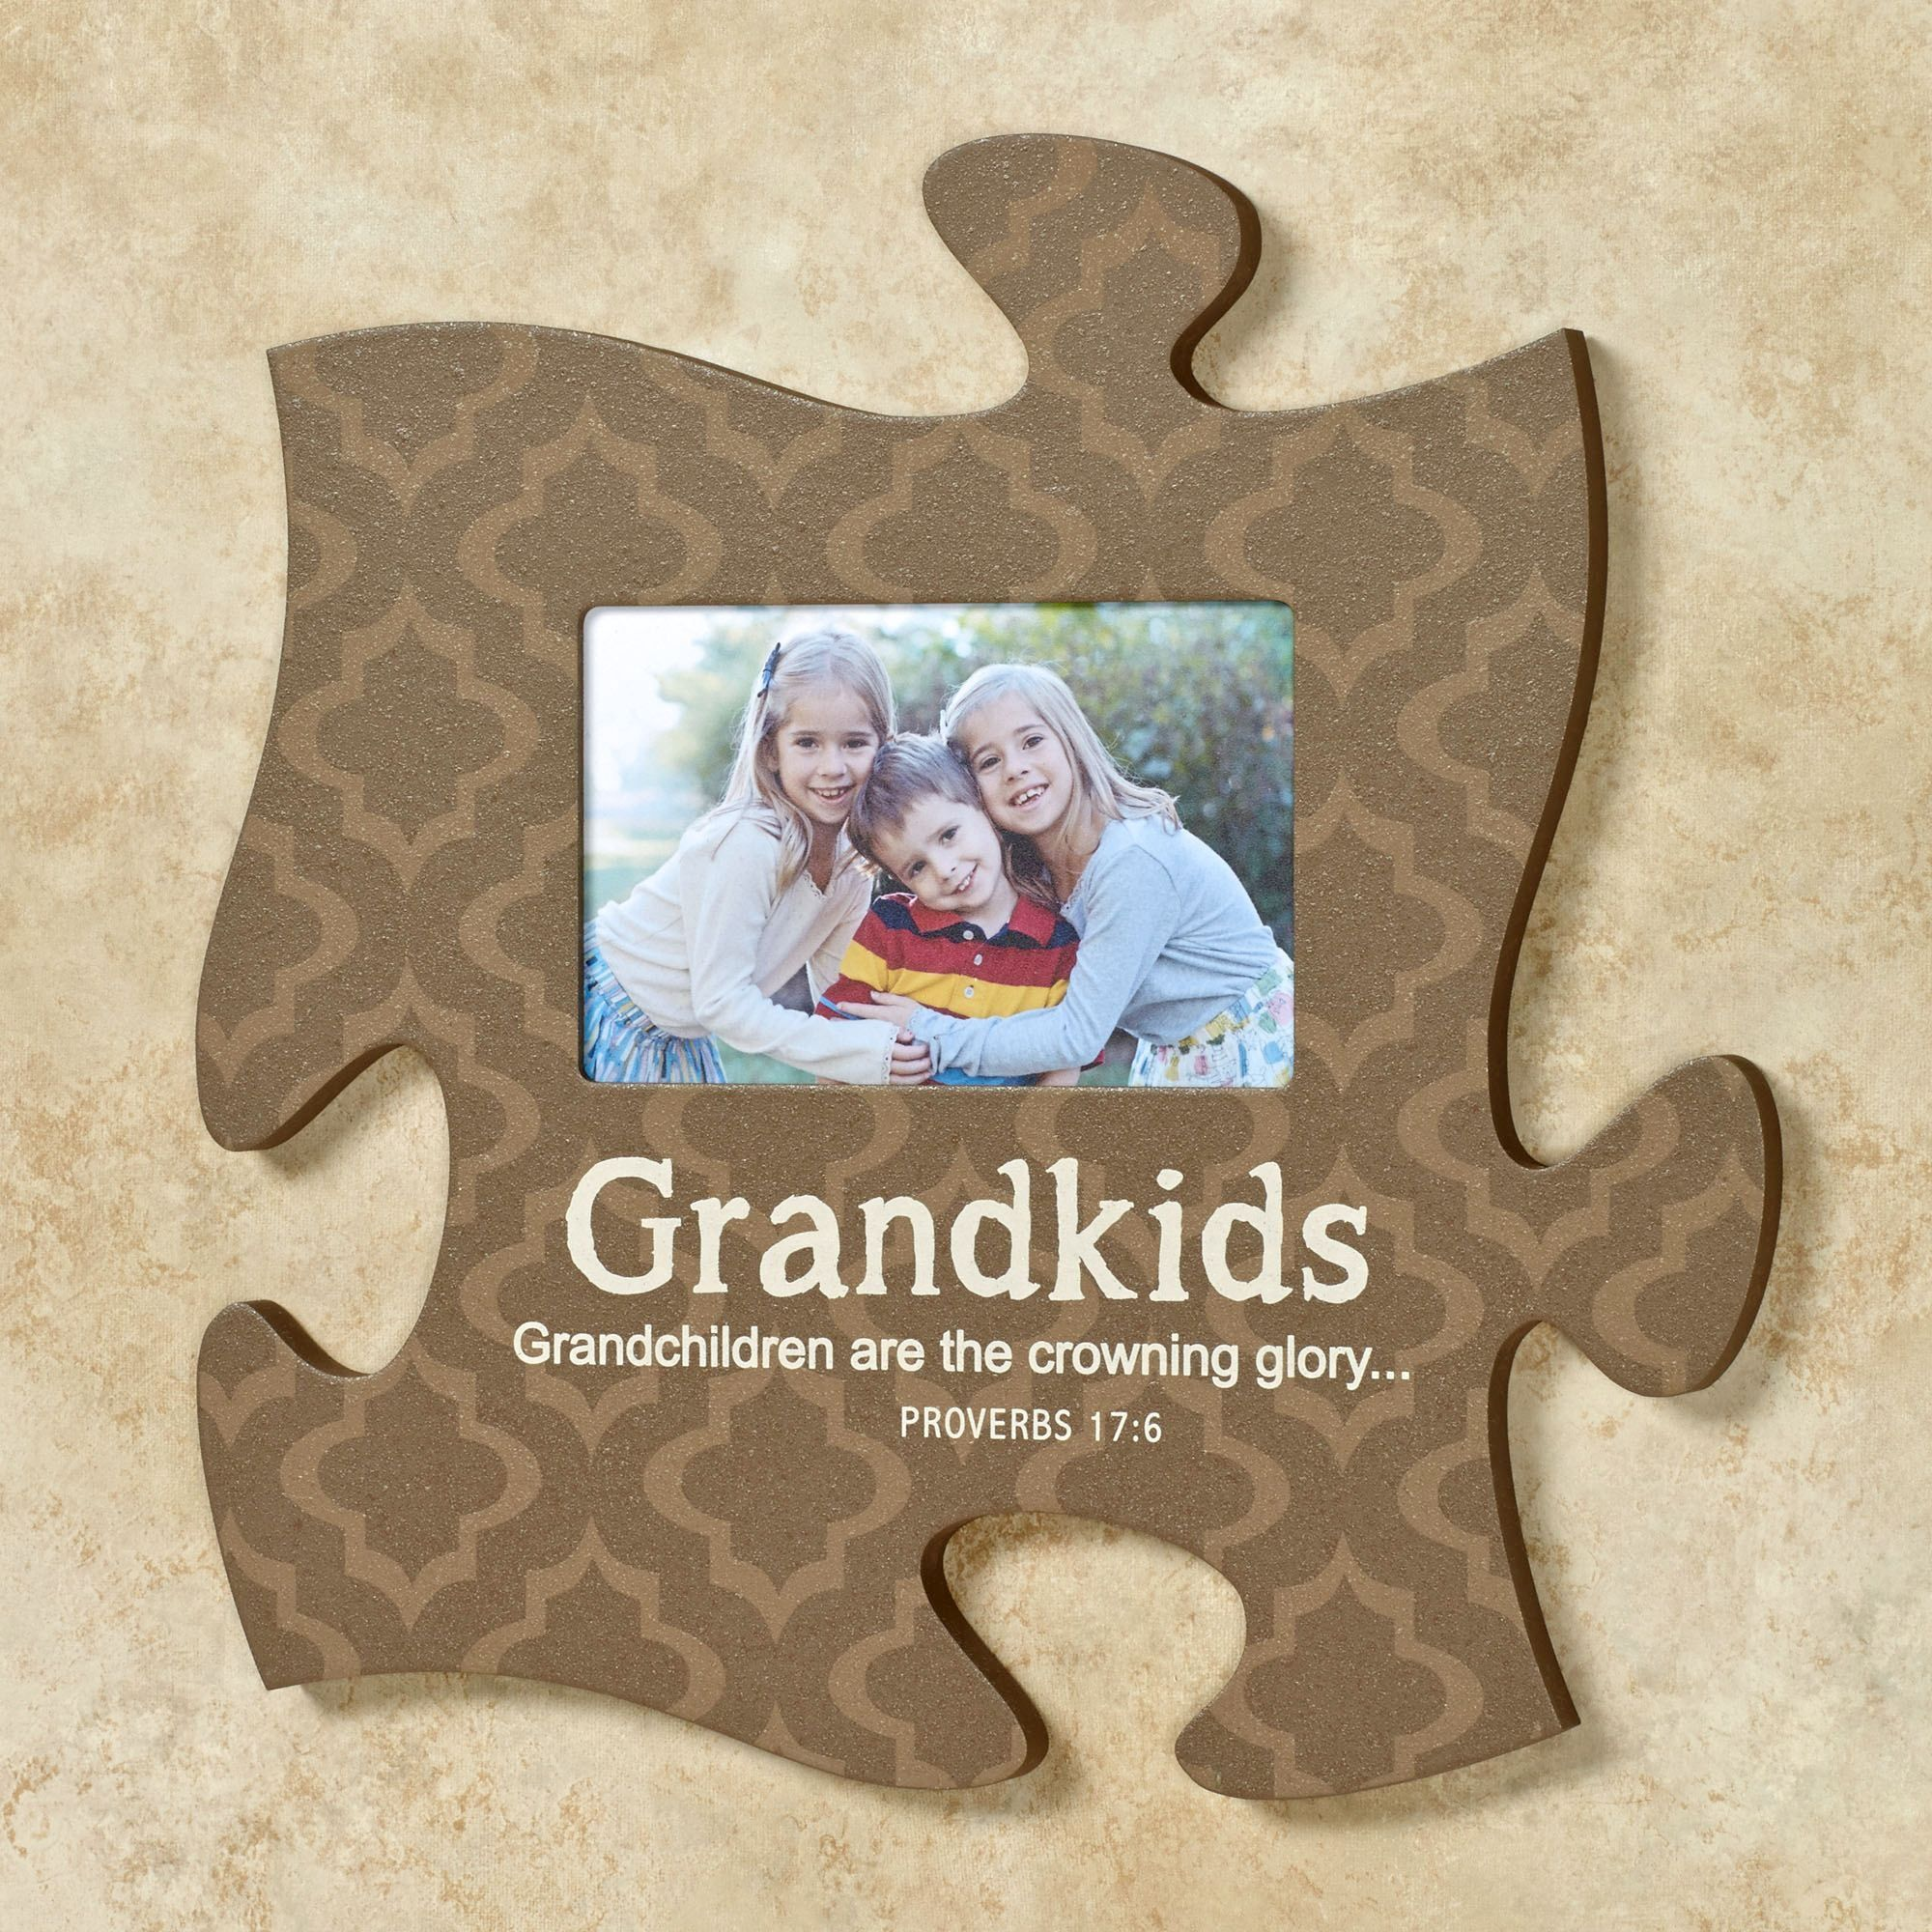 Grandkids quote photo frame brown wood crafts pinterest the grandkids and grandmother photo frame puzzle piece wall art allows you to display your familys cherished photos along with solid colors jeuxipadfo Images